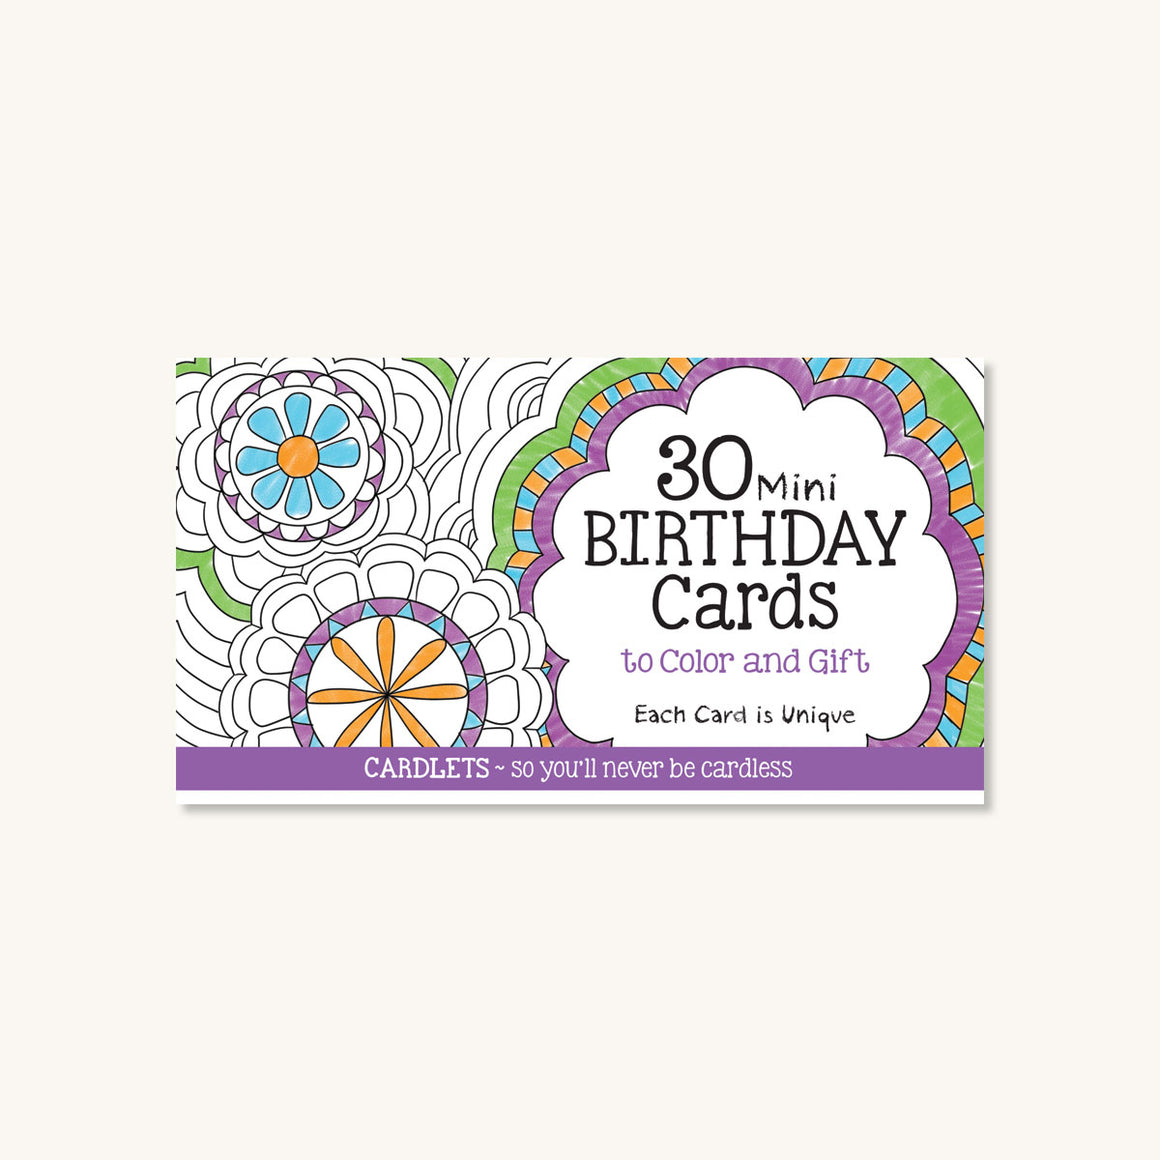 Cardlets: 30 Mini Birthday Cards